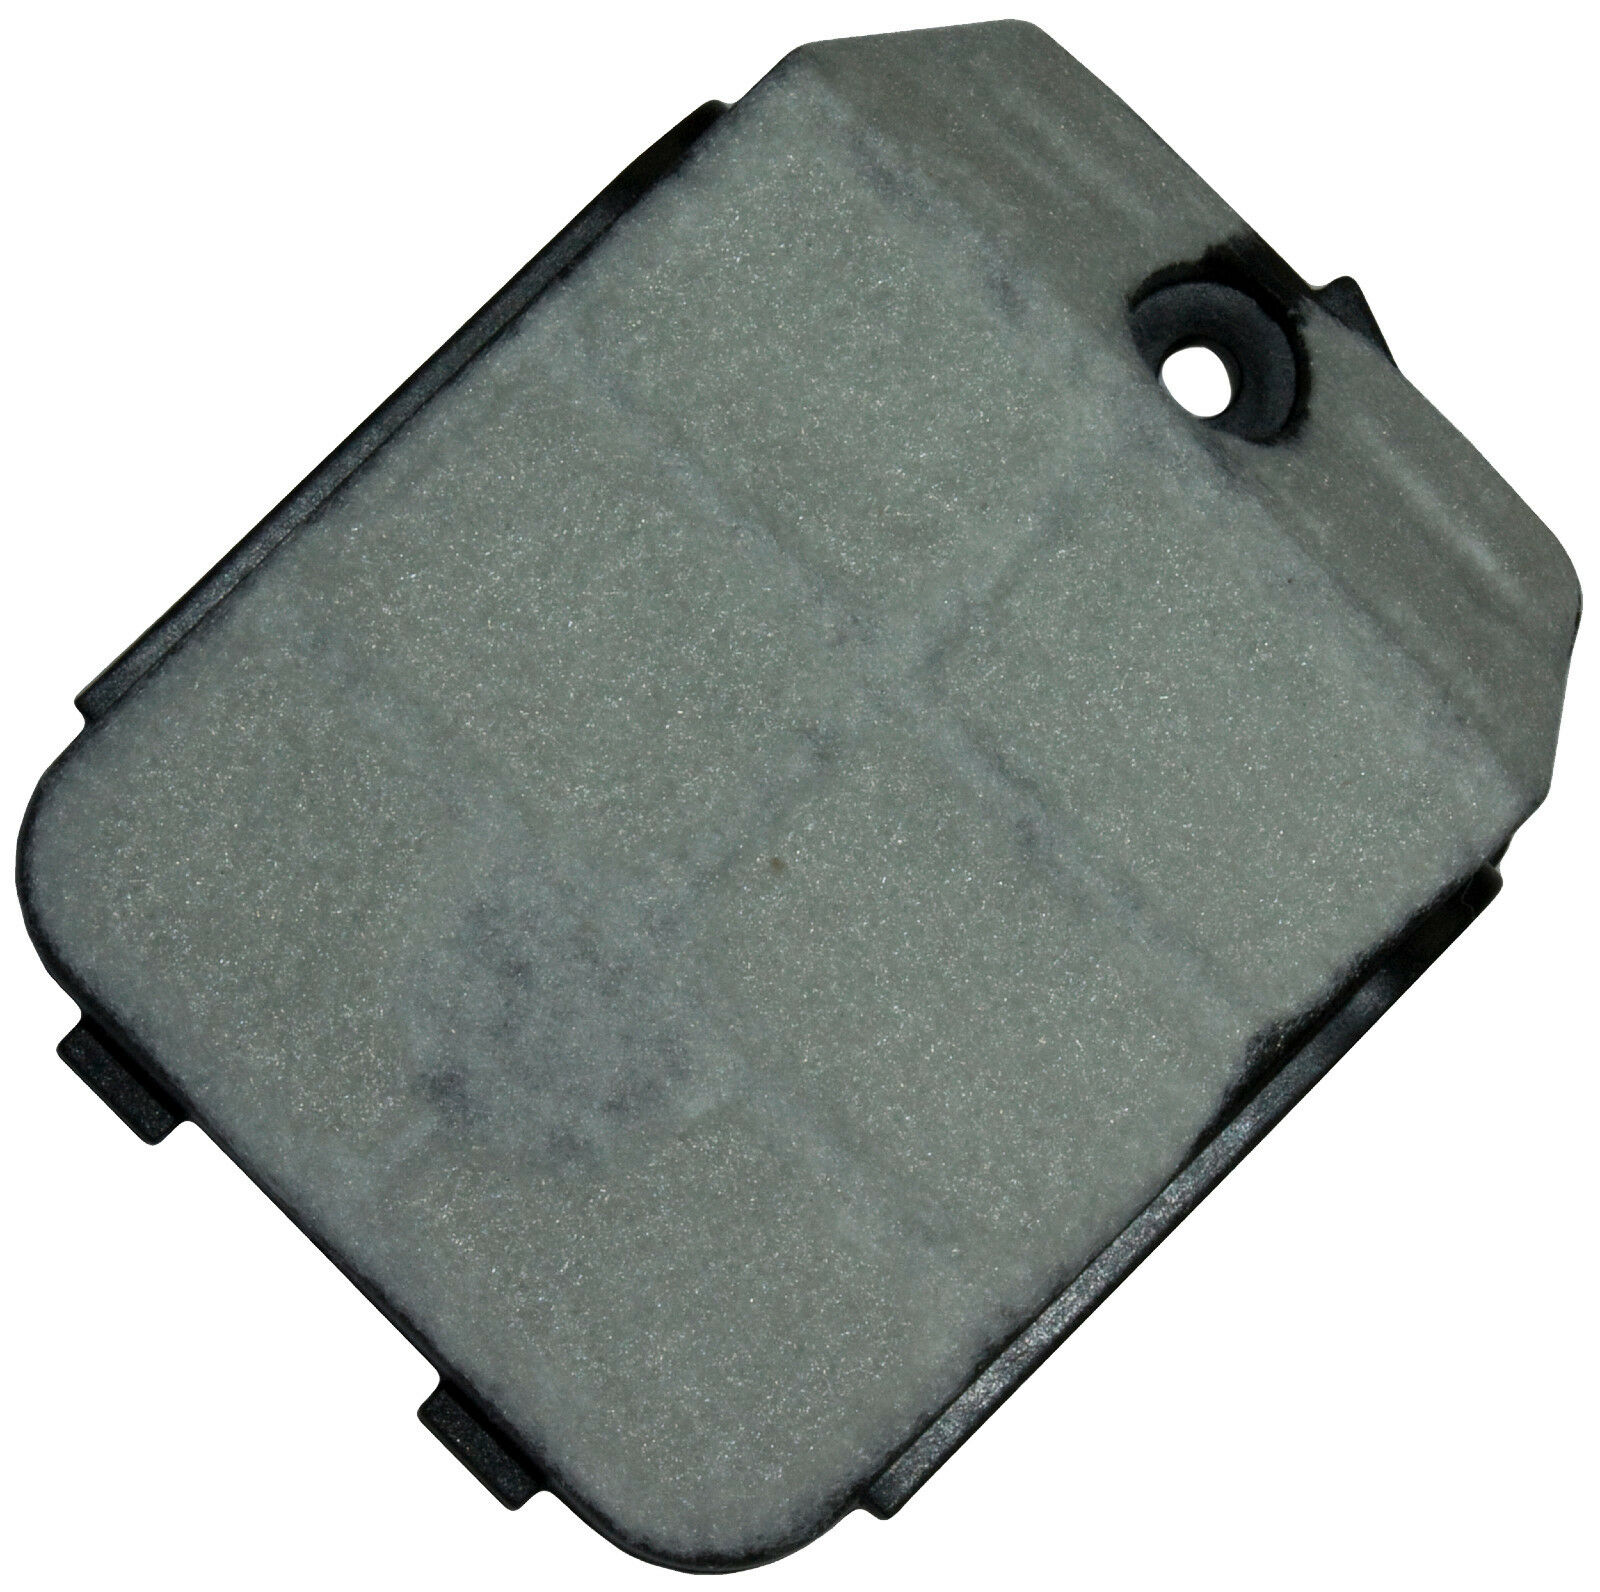 Ryobi PCN4040 Air Filter Top cover Petrol Chainsaw Spare Parts